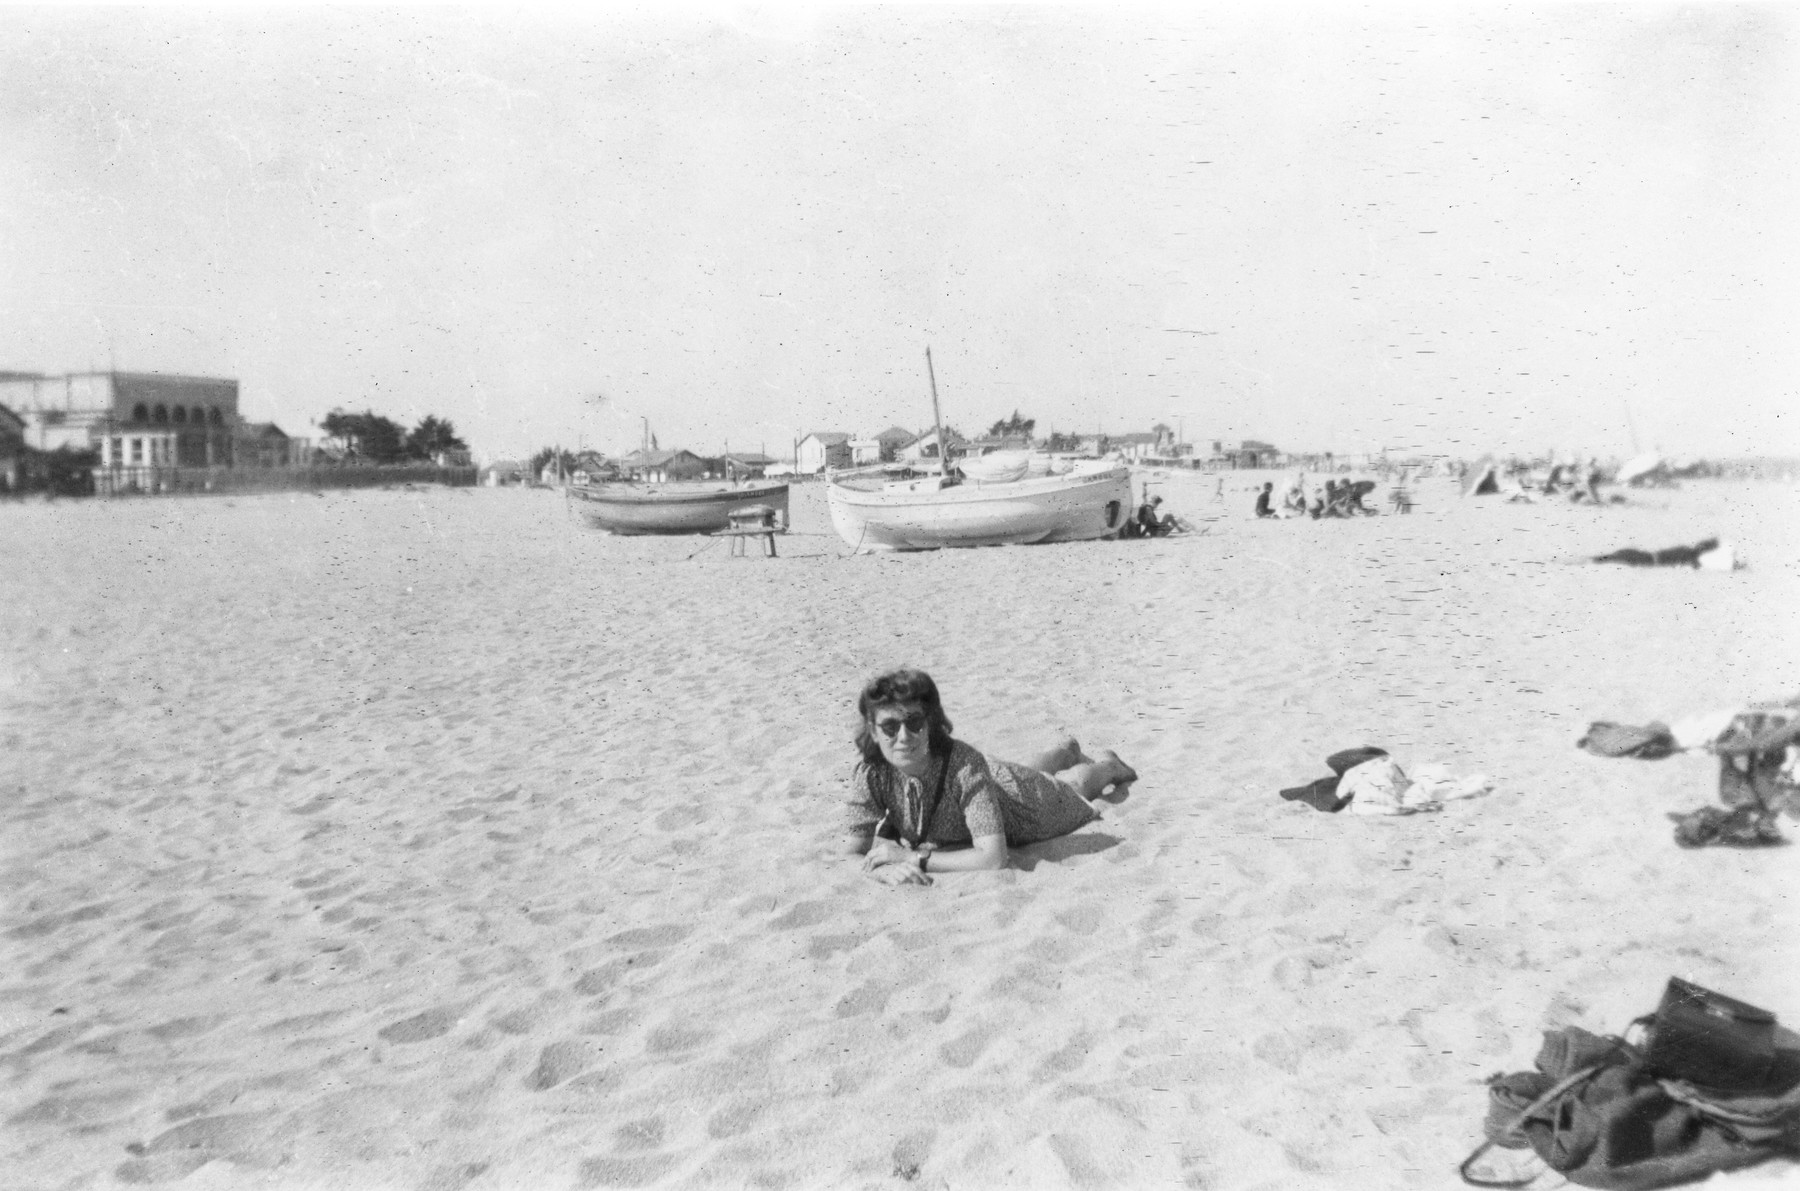 Solange Zitlenok rests on a beach.  A leader of OSE in southern France, Zitlenok found homes for Jewish children in hiding in southwest France.  She was later captured and shot.